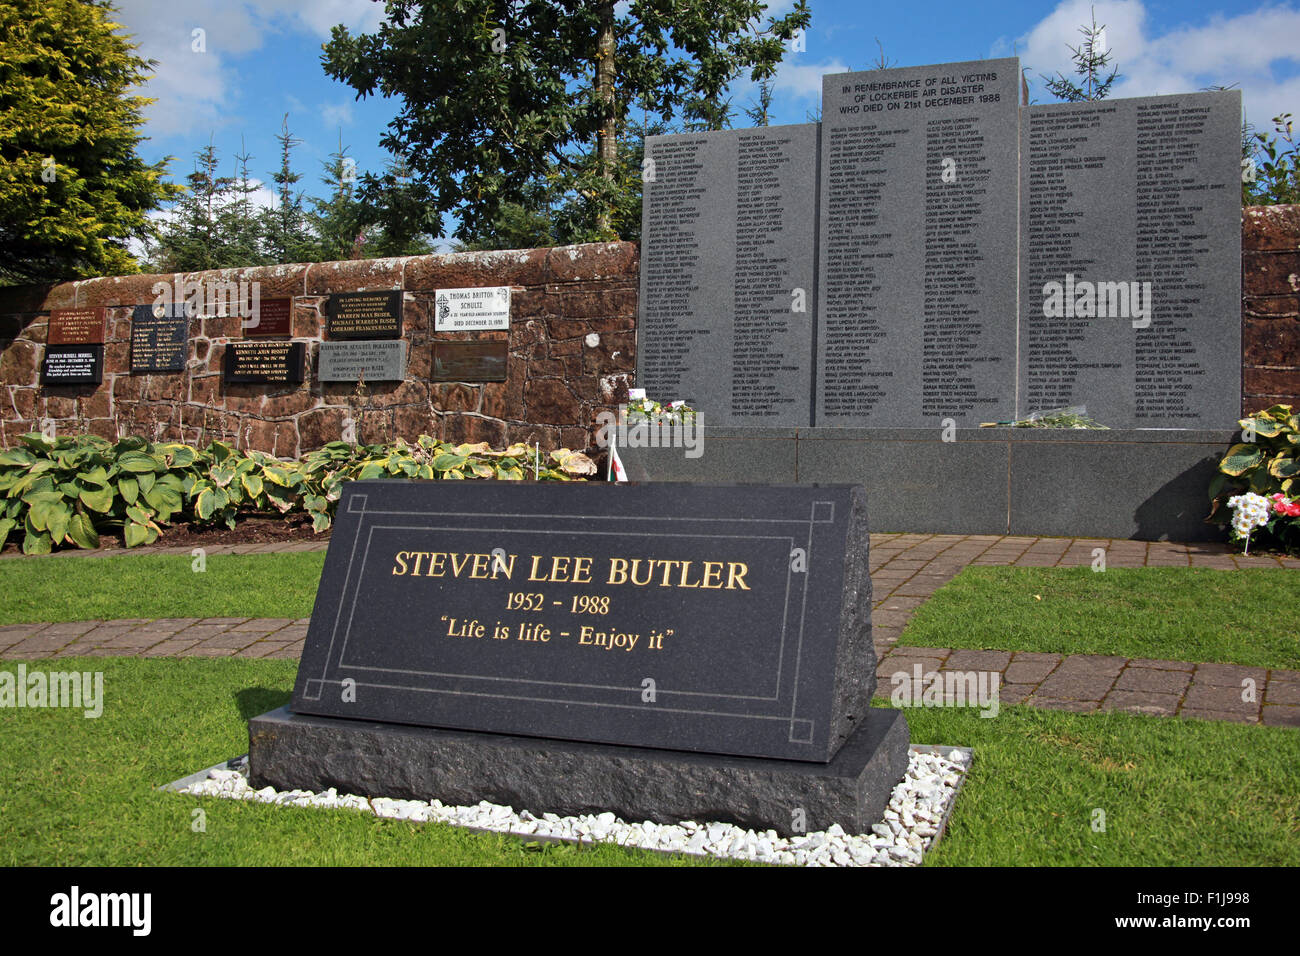 Lee Butler - Life Is Life Enjoy It,Scotland,Lodge,Visitors,Centre,DLVC,Trust,Lockerbie,Memorial,Remembrance,Scotland,Victims,Pan,Am,PanAm,flight,103,bomb,bombing,terrorist,December,1988,attack,crash,dead,site,21/12/1988,270,victims,Scottish,Town,conspiracy,blast,Tundergarth,Room,garden,of,New York,GoTonySmith,Lodge,Visitors,Centre,DLVC,Trust,Lockerbie,Memorial,Scotland,Victims,Pan,Am,PanAm,flight,103,bomb,bombing,terrorist,December,1988,attack,crash,dead,site,21/12/1988,270,victims,Scottish,Town,conspiracy,blast,Tundergarth,Room,garden,of,Dryfesdale,Cemetery,news,Cultural,understanding,remembering,innocent,transatlantic,Frankfurt,Detroit,Libyan,Libya,Colonel Muammar Gaddafi,civil,case,compensation,terrorism,PA103,30,30years,years,Syracuse,University,SU,family,collections,Story,Archive,Archives,40,35,Timeline,saga,disaster,air,Scholars,program,programs,remembrance,Clipper Maid of the Seas,N739PA,Boeing,727,plane,aircraft,Scotland,UK,United Kingdom,GB,Great Britain,resting,place,Buy Pictures of,Buy Images Of,New York,al megrahi,30 Years